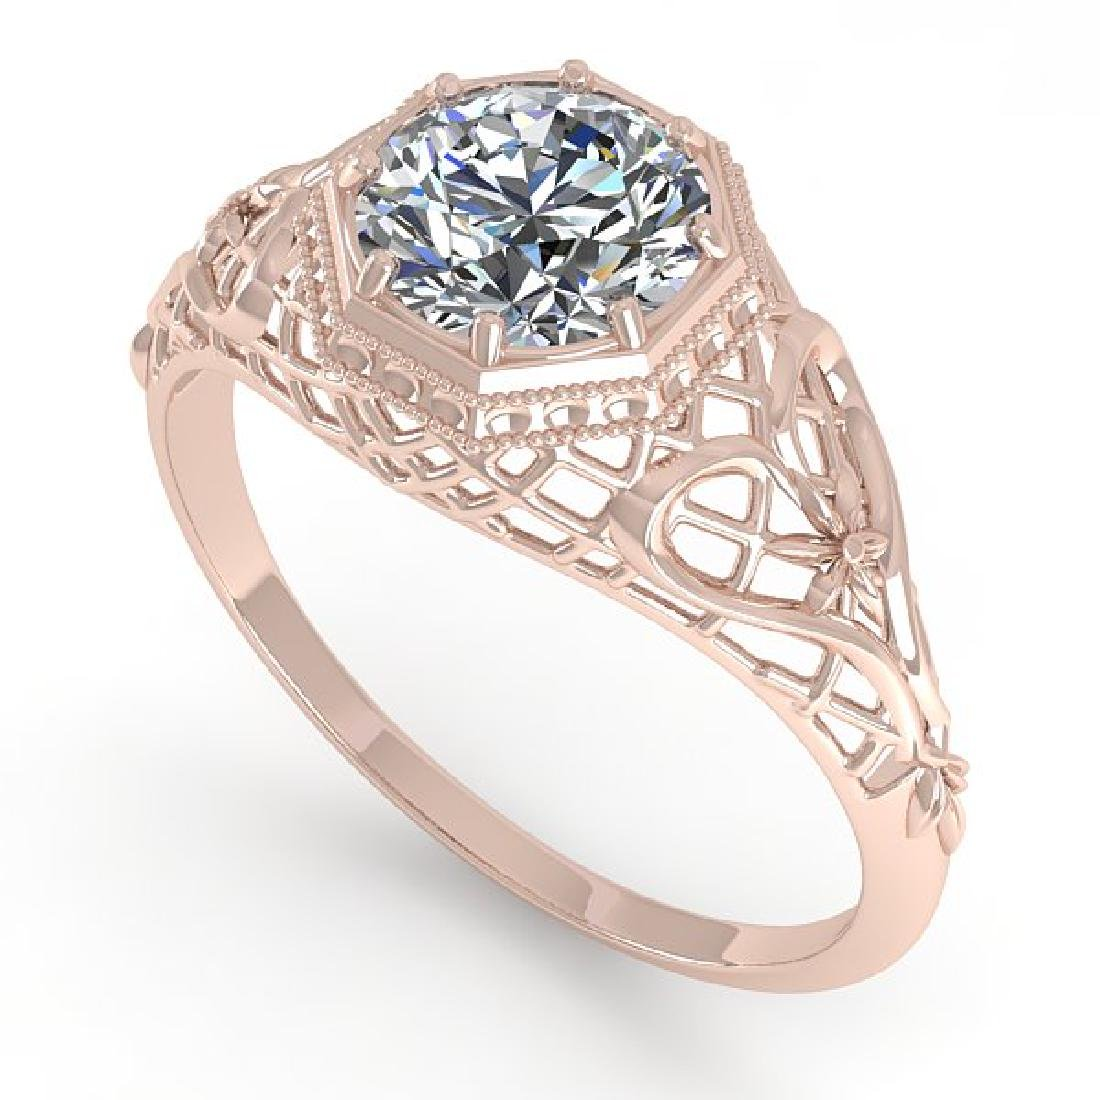 1.01 CTW VS/SI Diamond Solitaire Ring 14K Rose Gold - 2